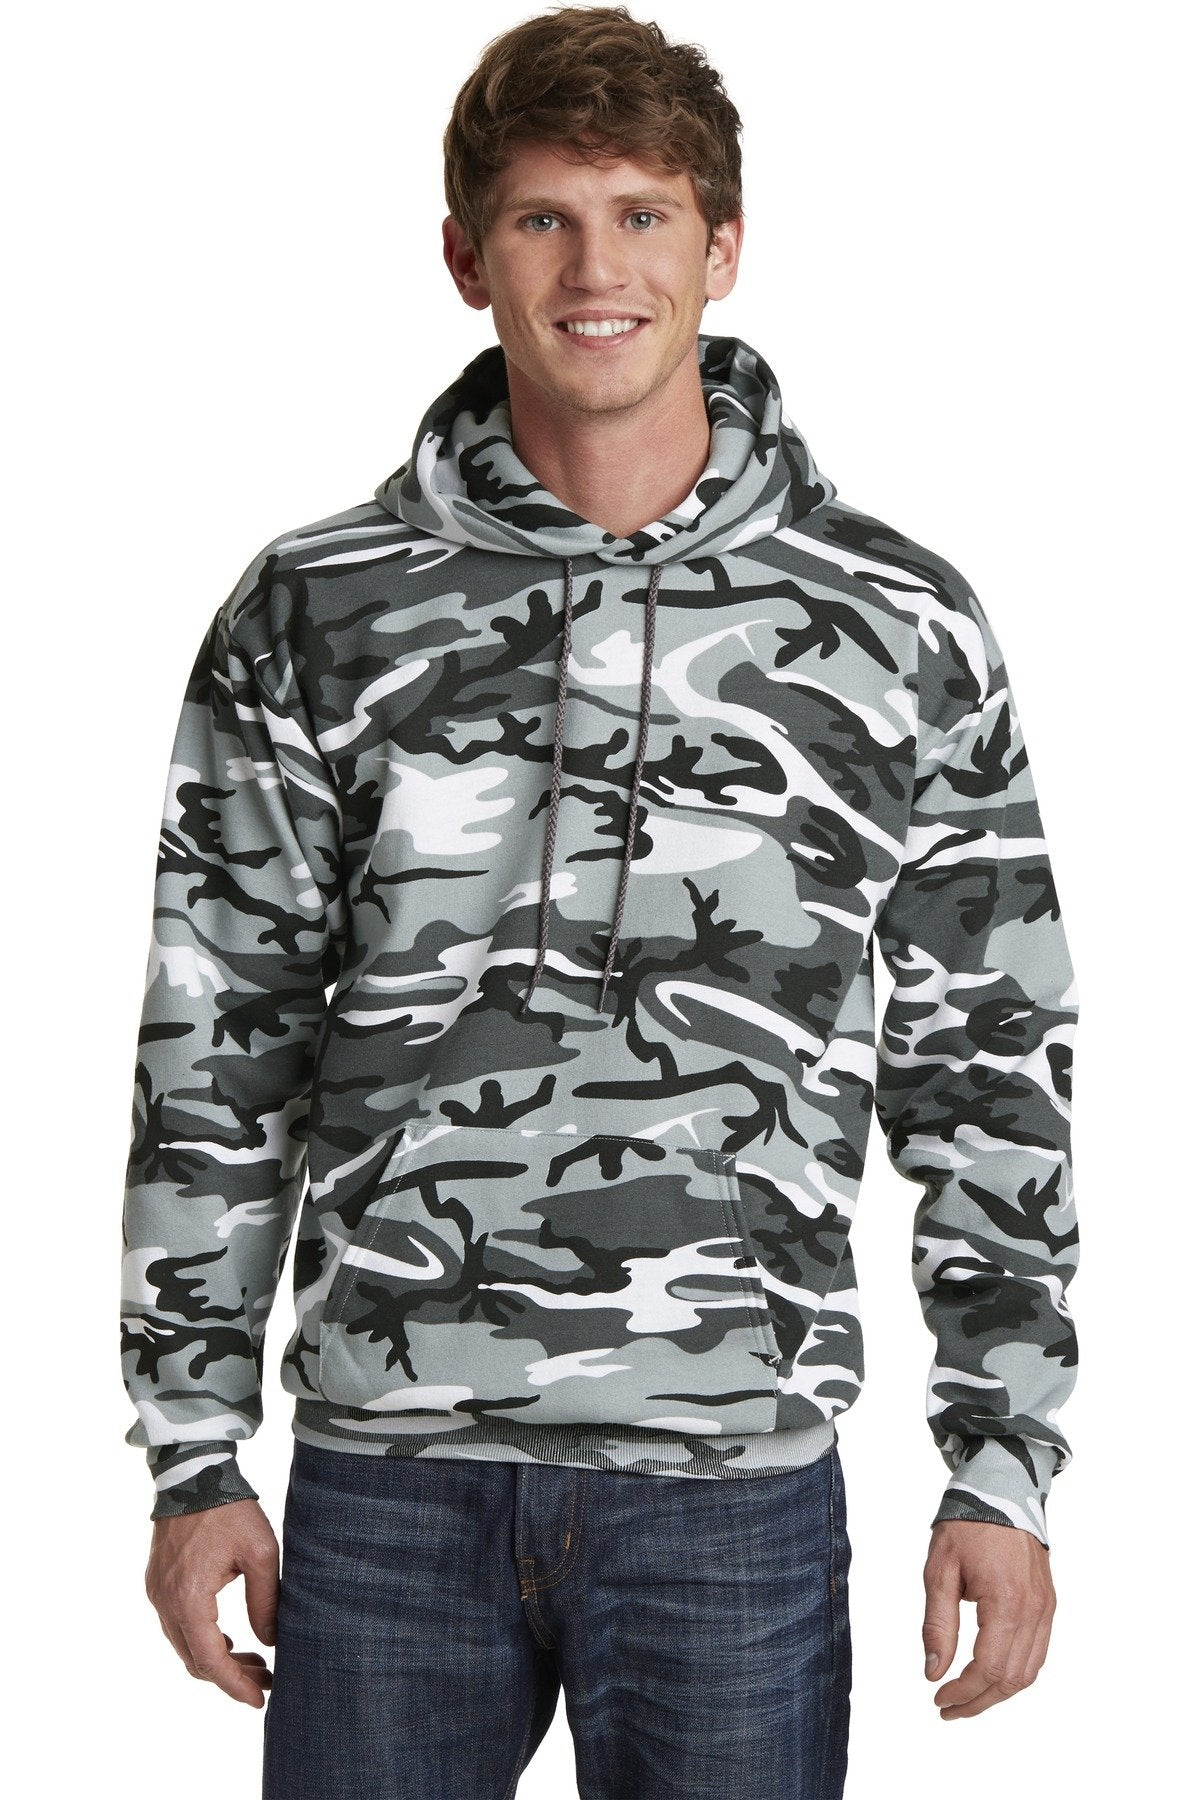 Winter Camo - Port & Company PC78HC